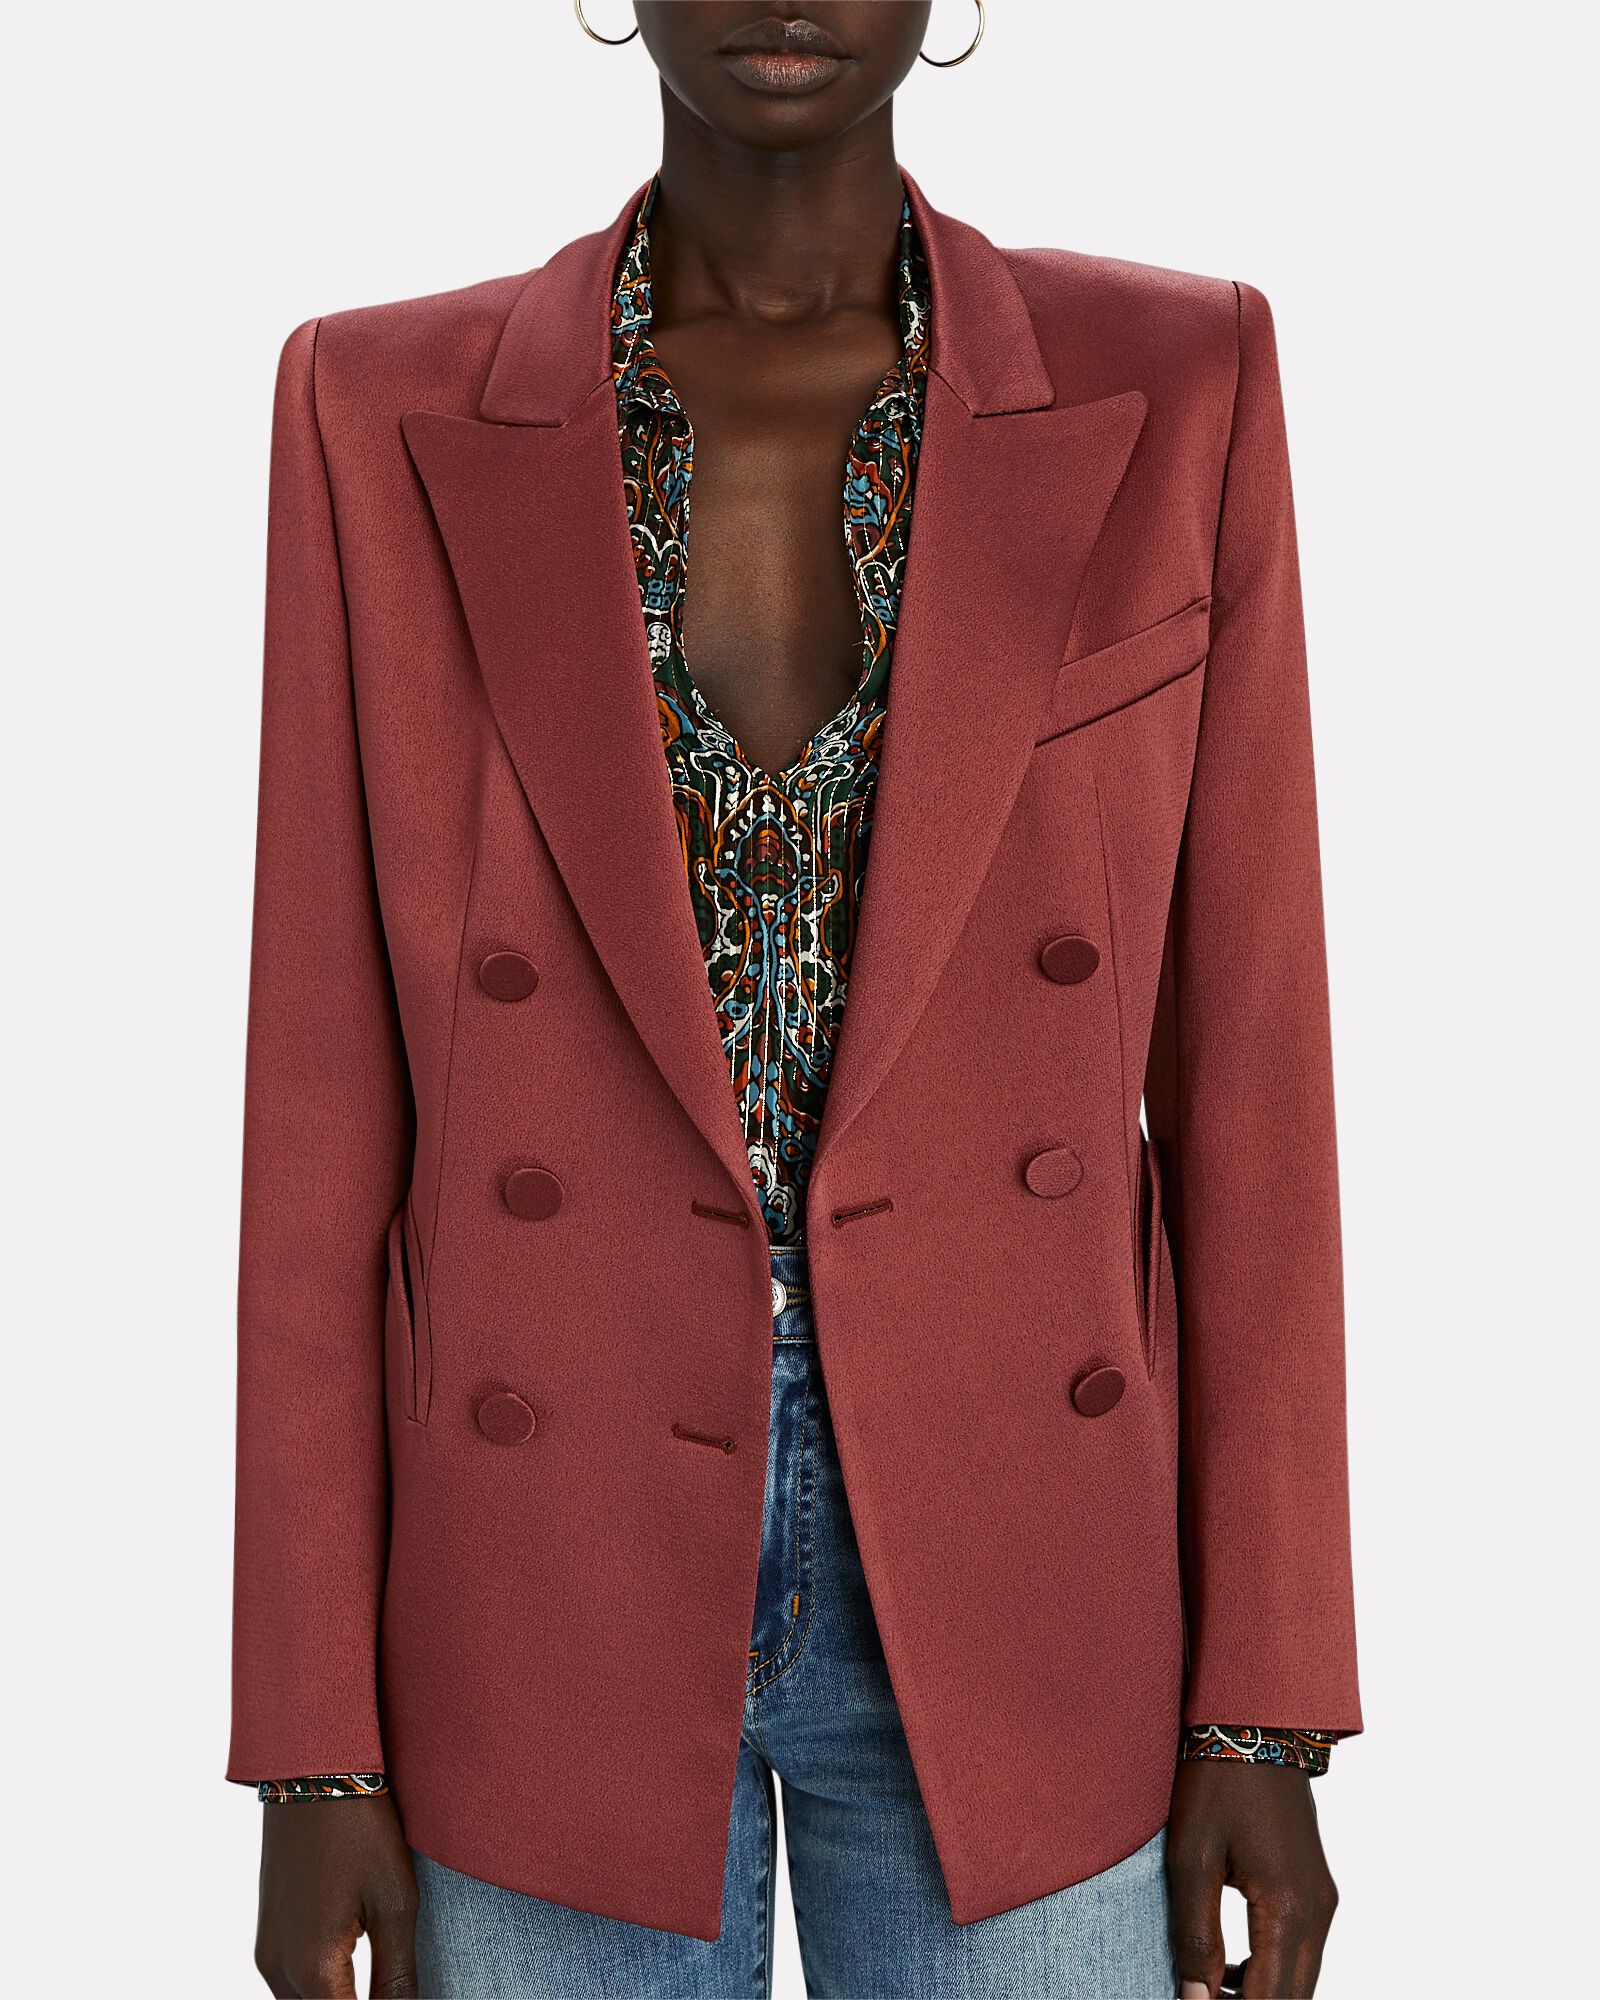 Novalis Charmer Double-Breasted Blazer, PINK, hi-res